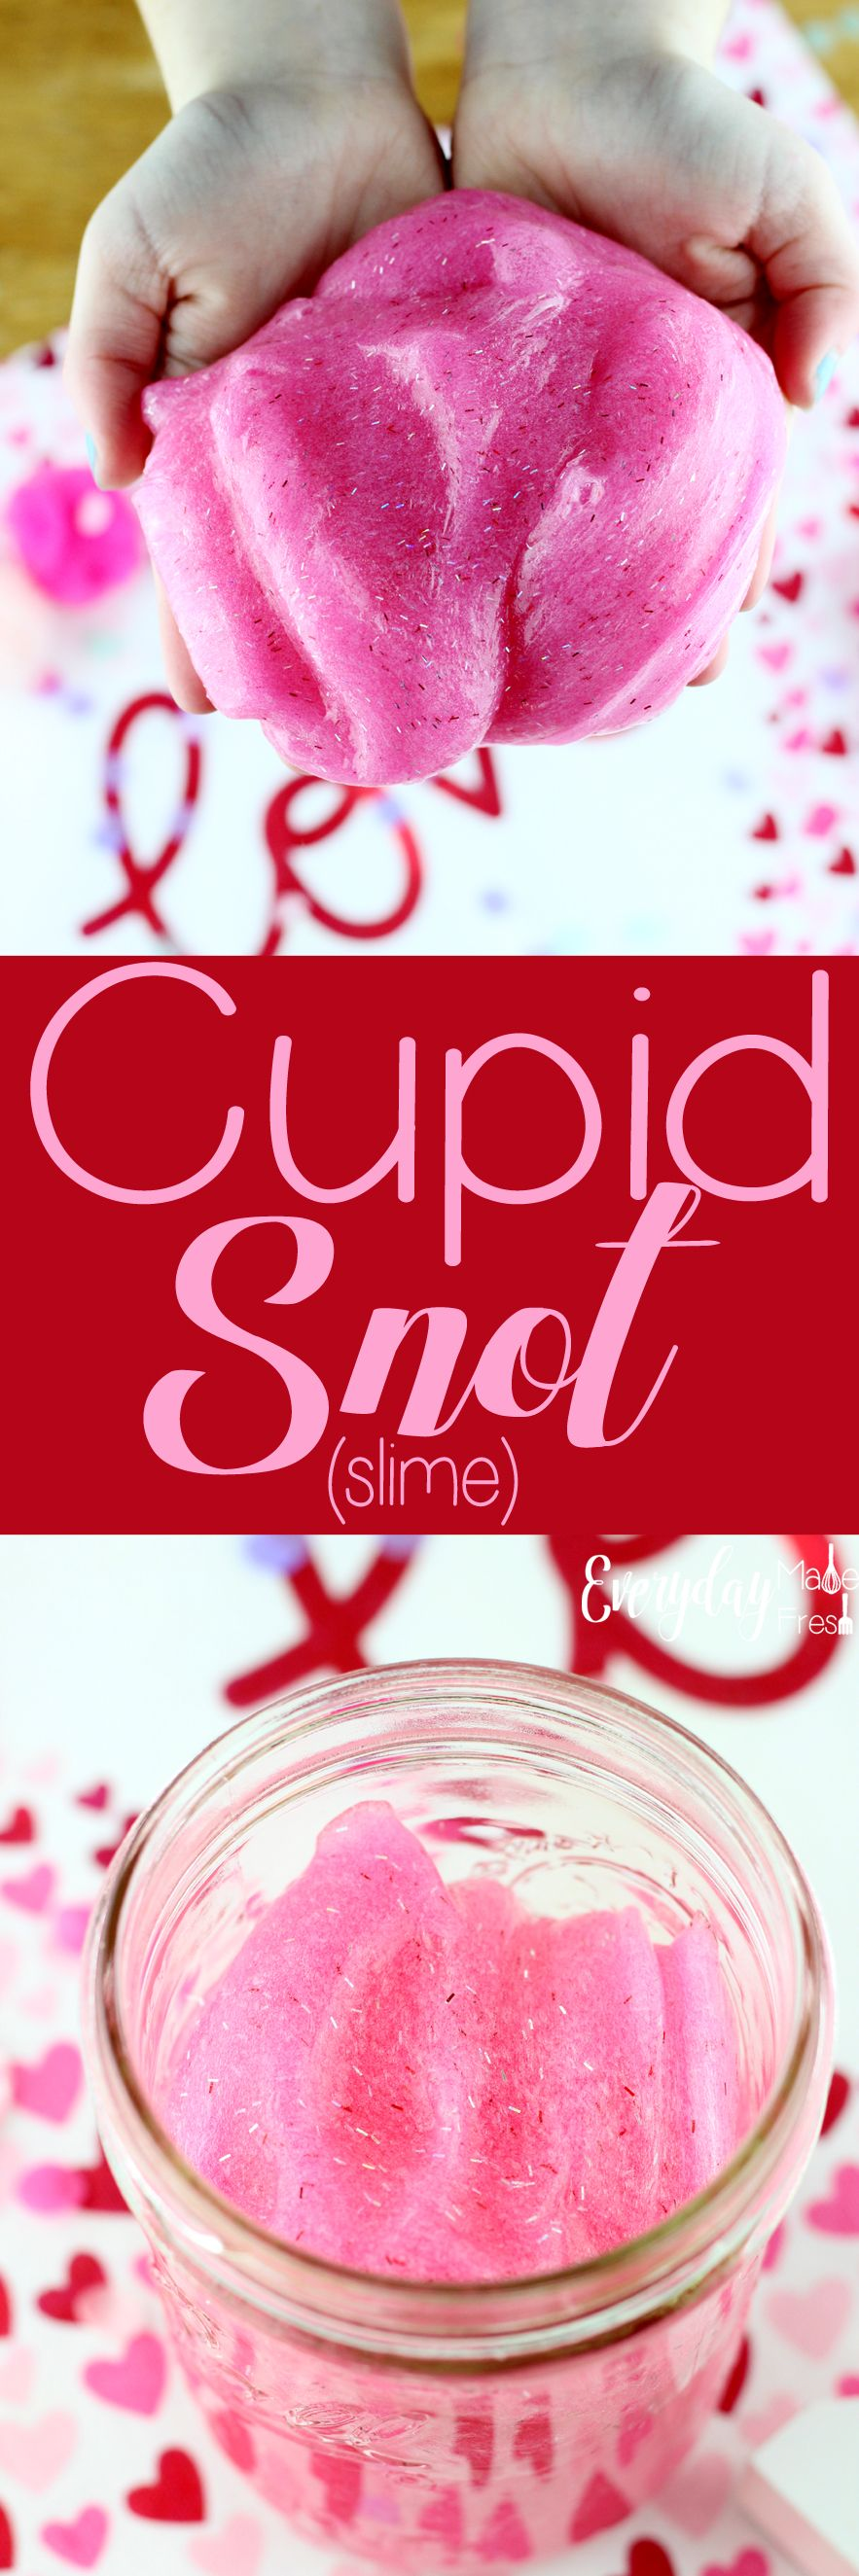 Cupid snot slime slime cupid and craft a simple 3 ingredient slime base is what is used for this cupid snot ccuart Image collections